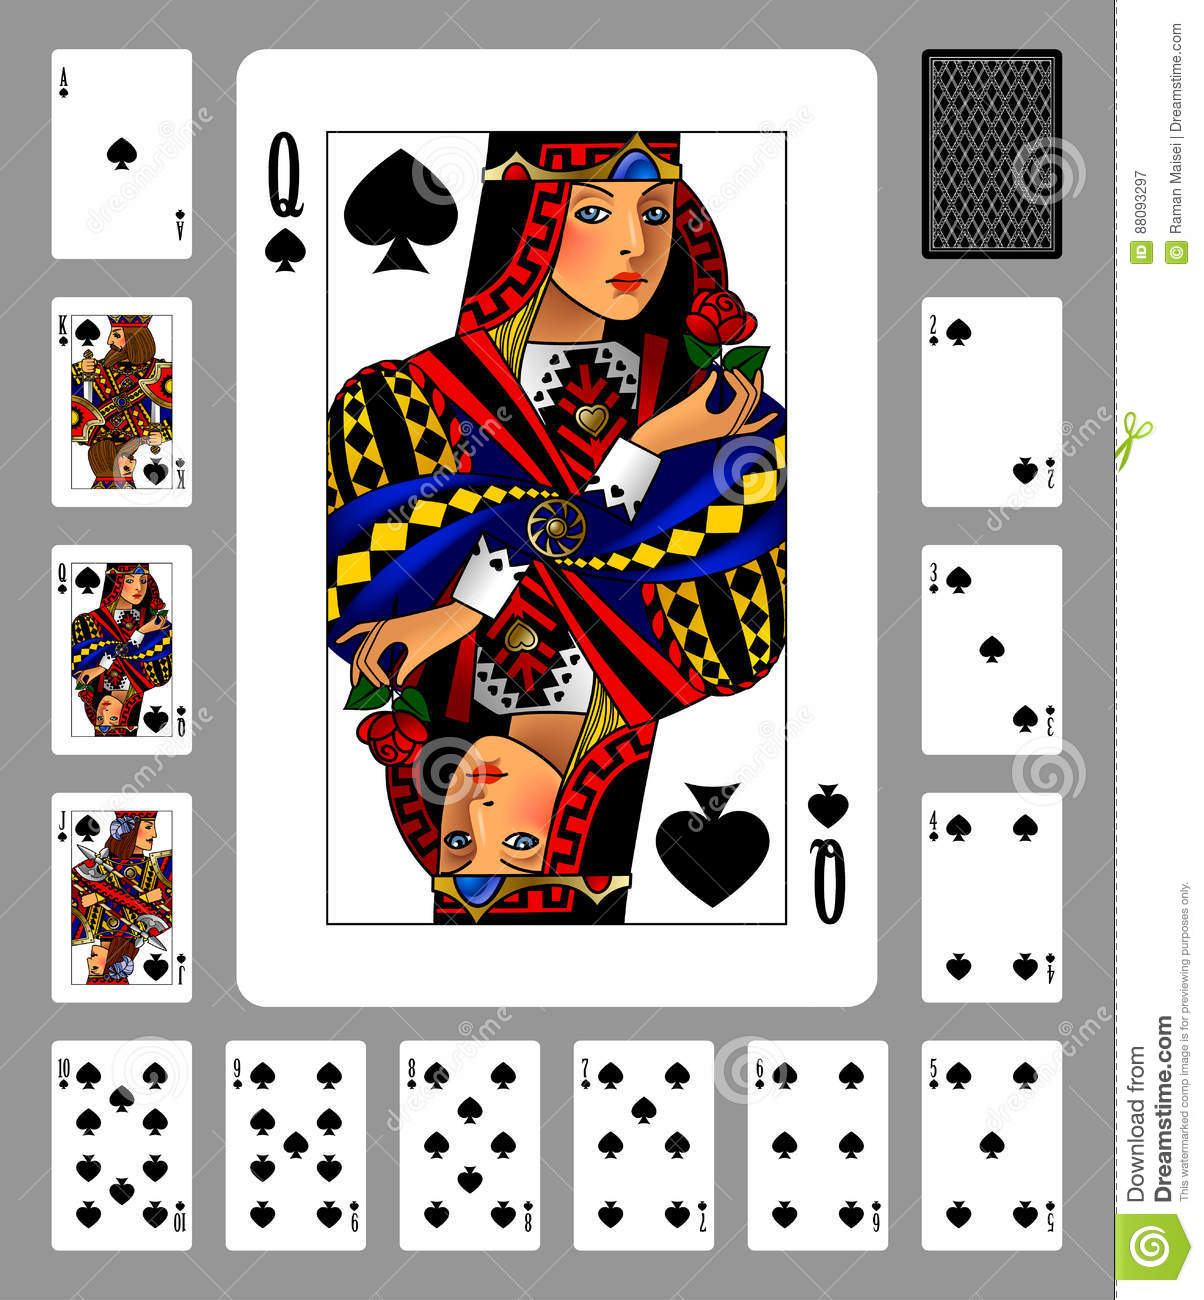 Classic Playing Cards - Spades Stock Photography | CartoonDealer.com #18354584